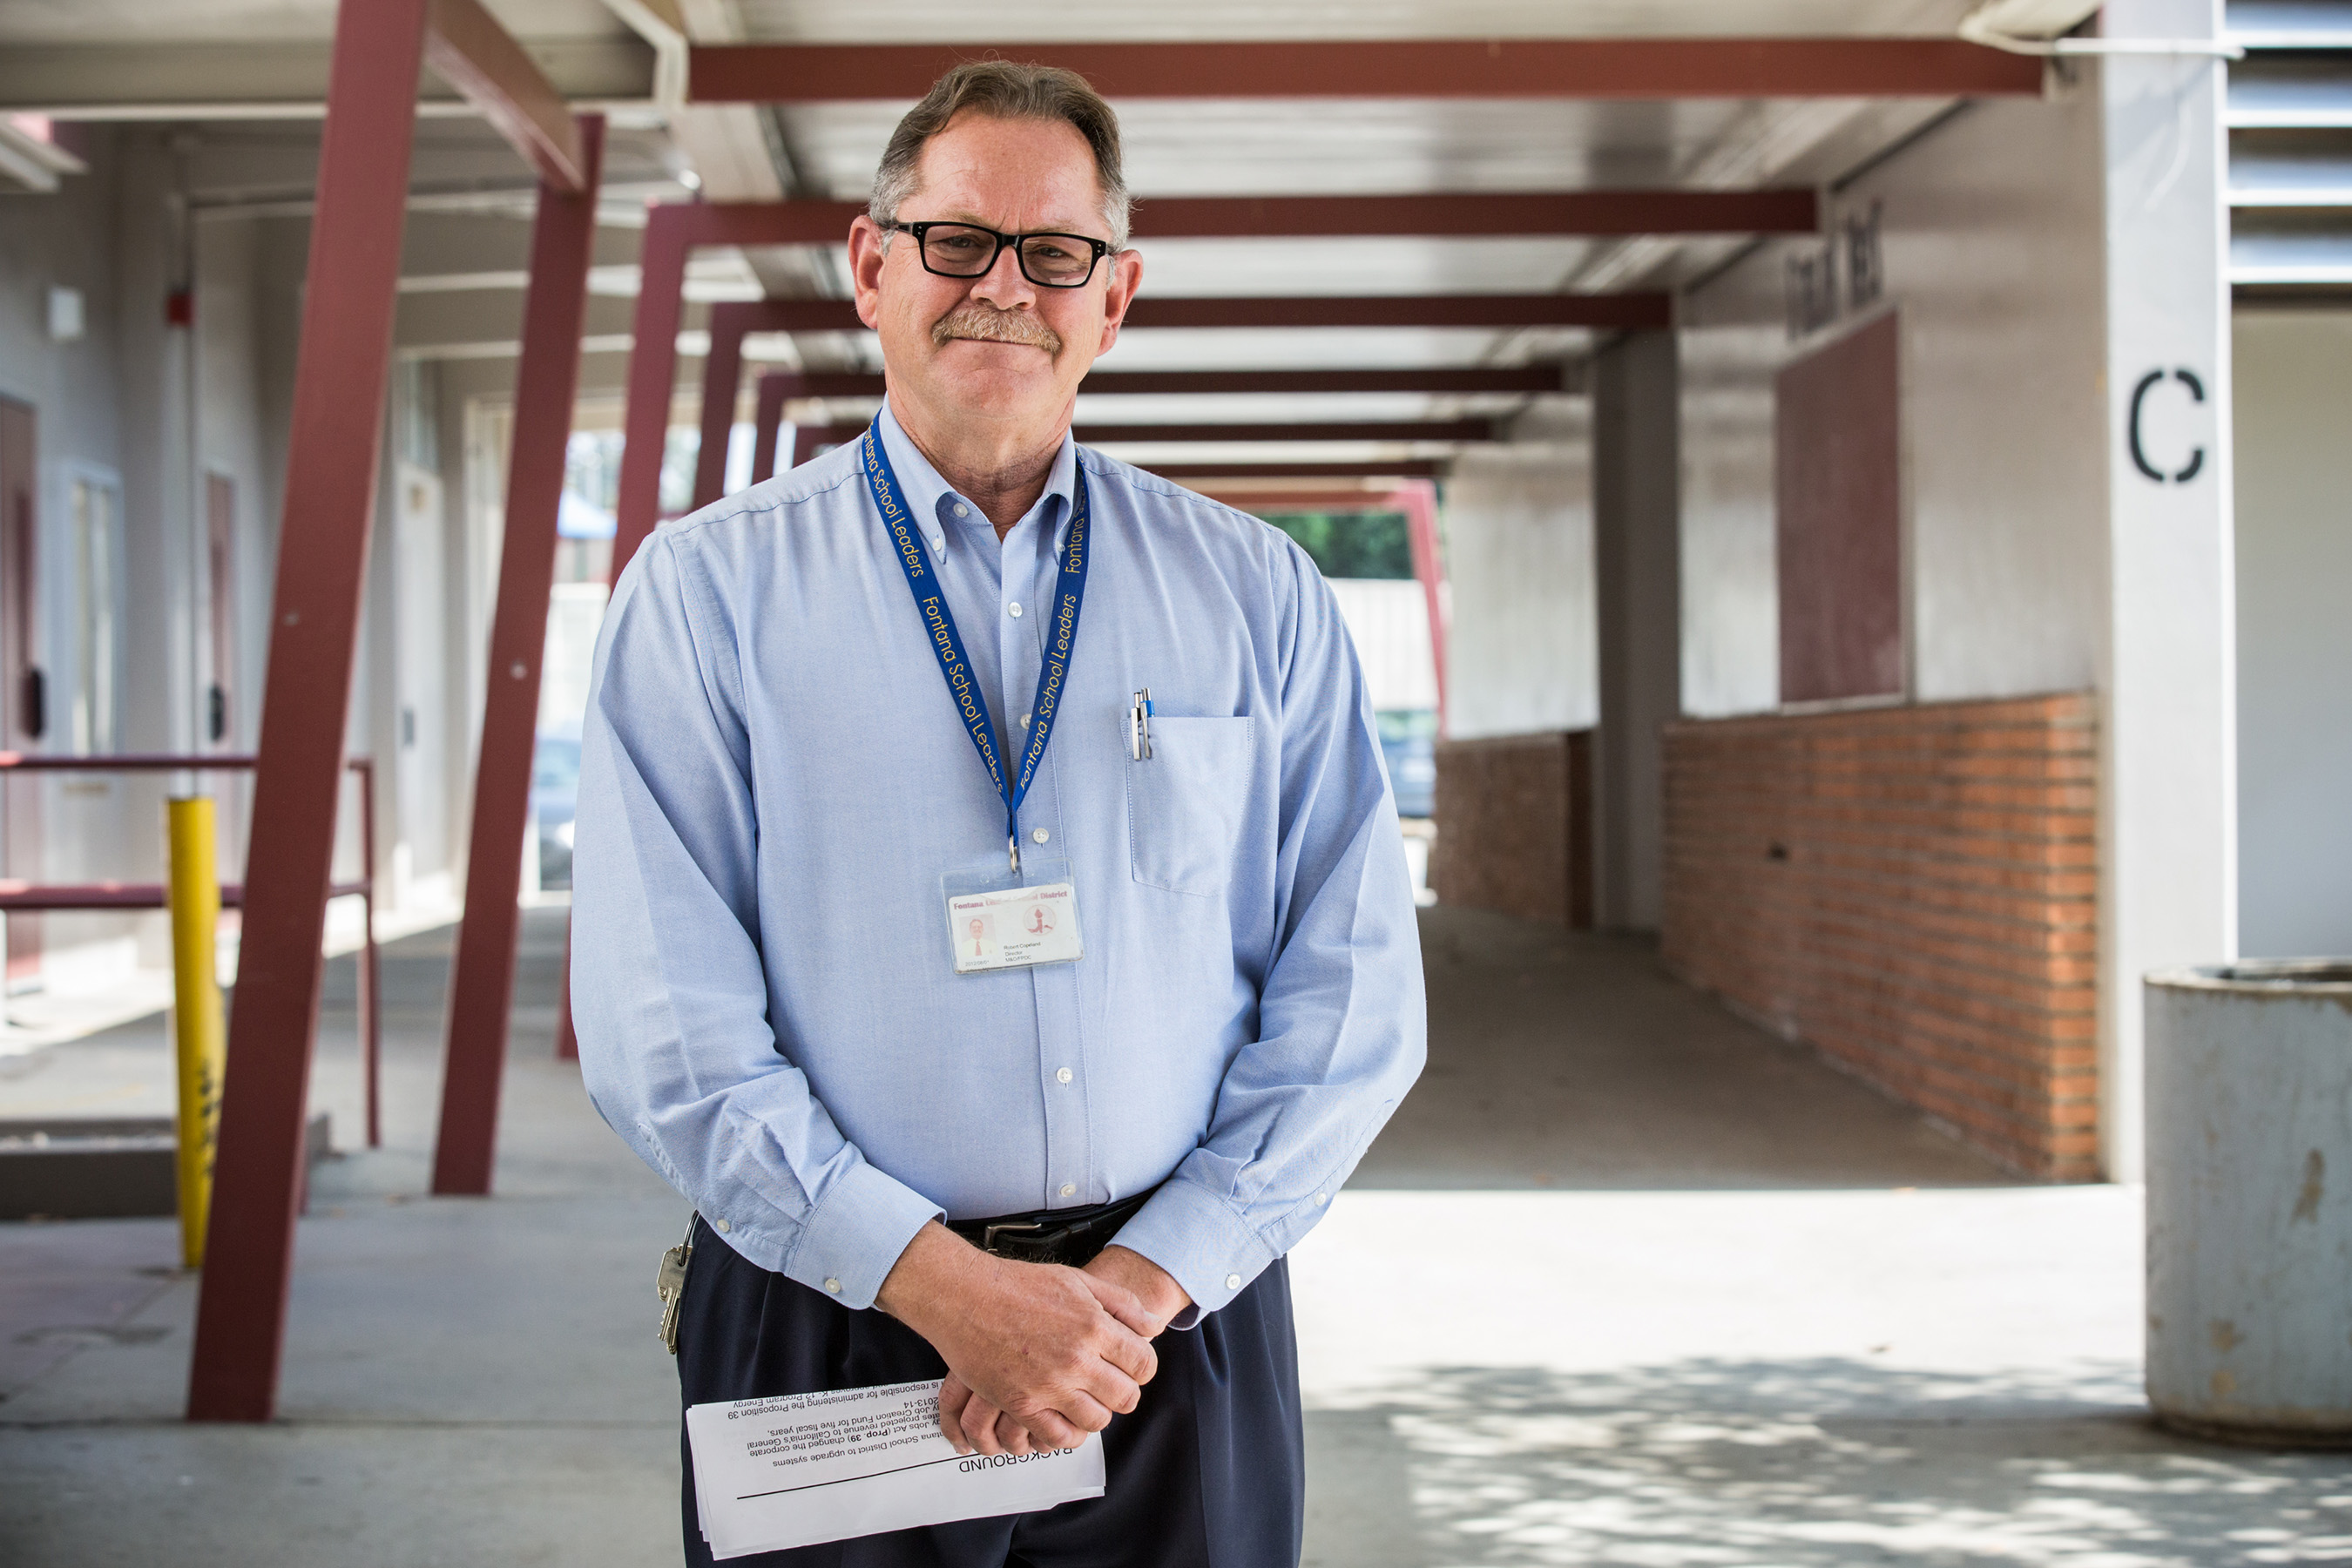 Robert Copeland, Fontana School District's director of maintenance and operations, led the project to replace aging rooftop units with more than 200 new Carrier RTUs to increase comfort and efficiency.